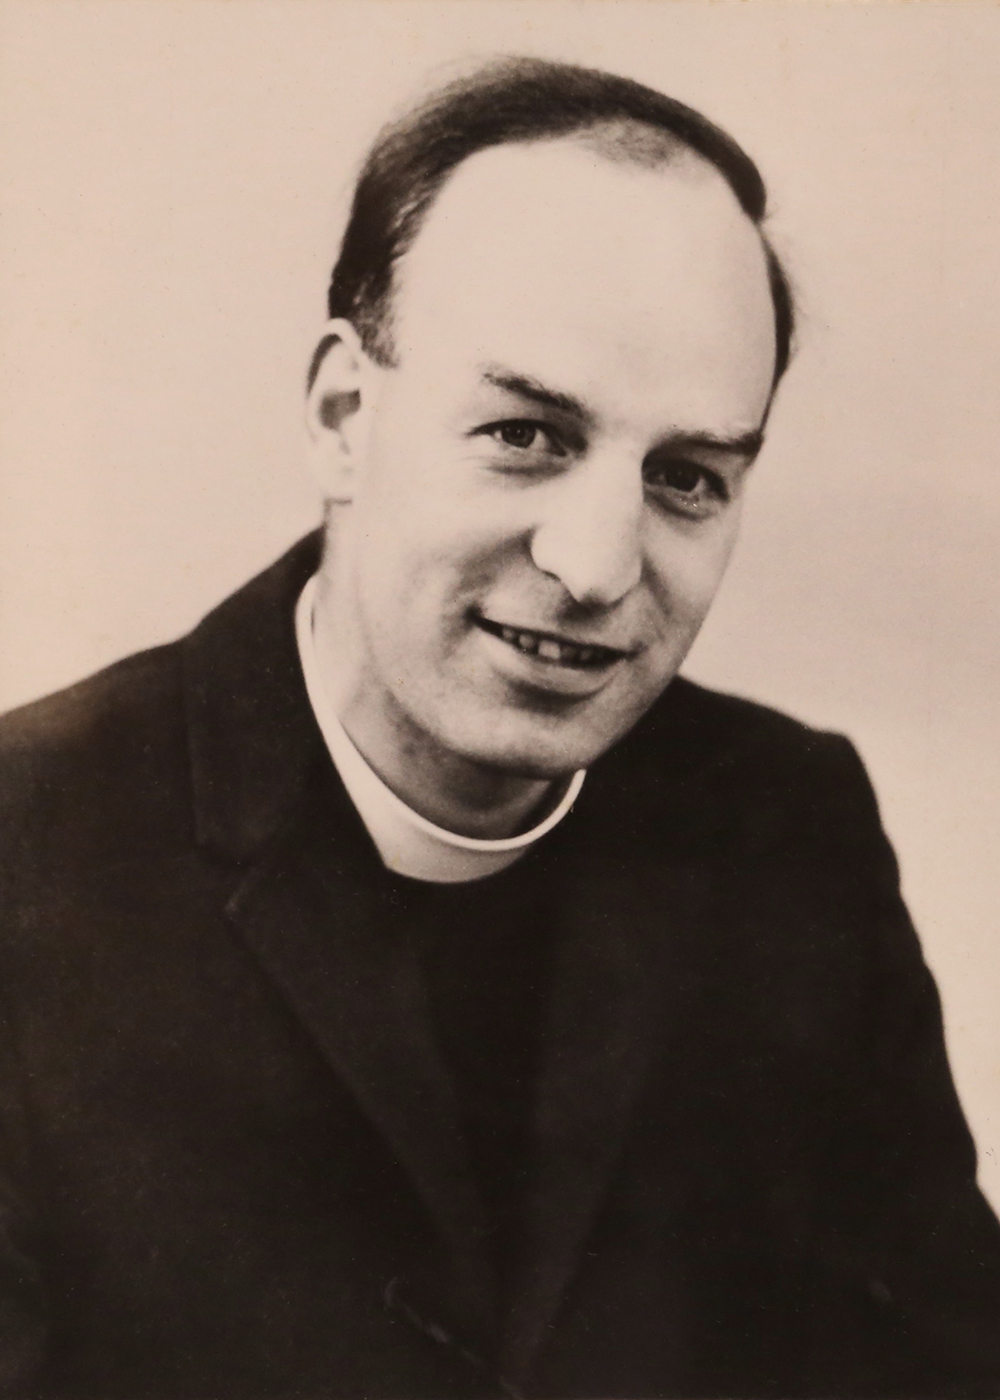 Rev. James Clyde Irvine  1968 - 1974